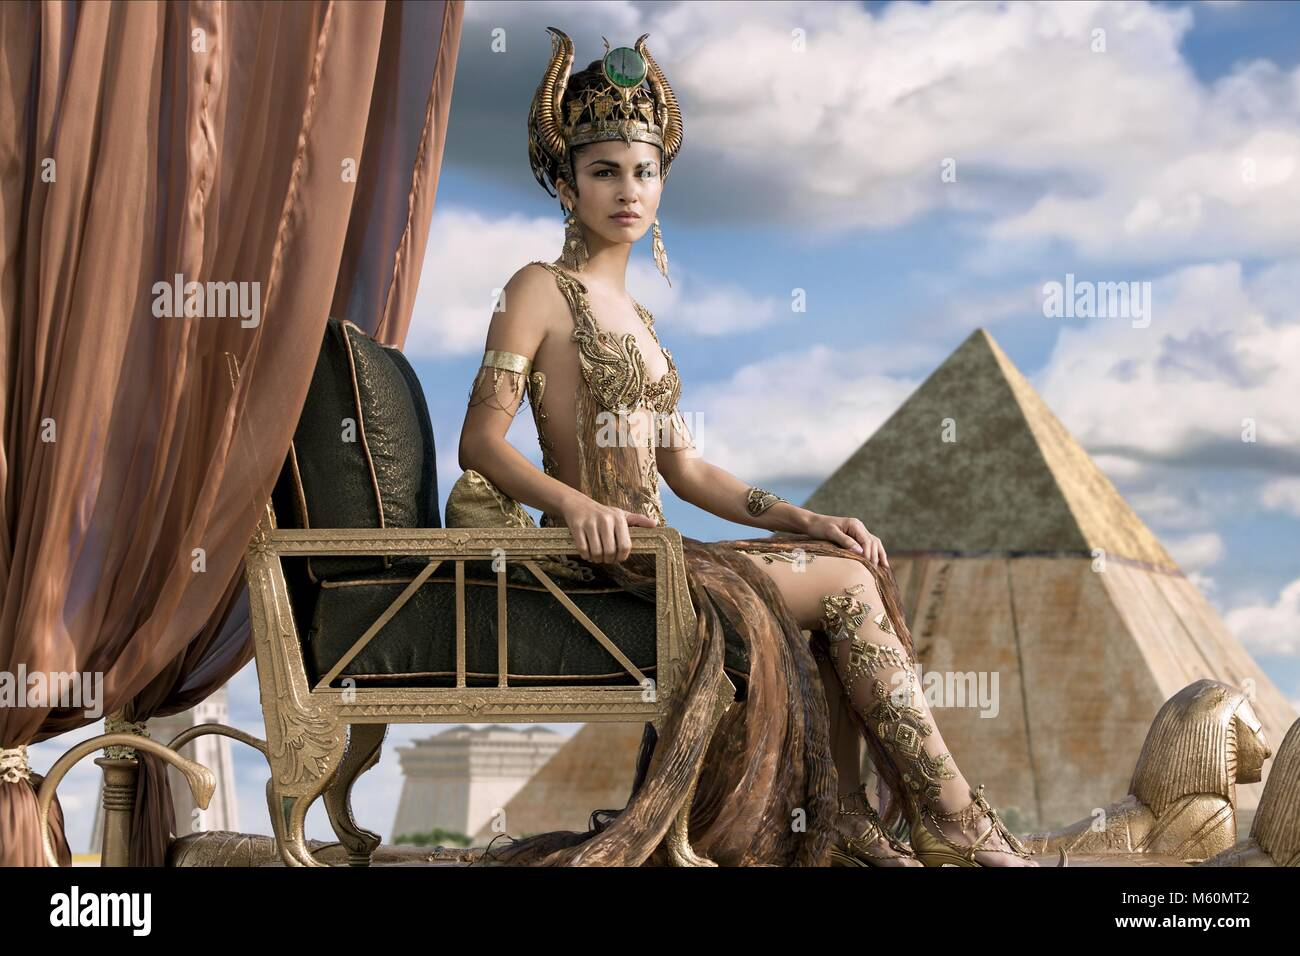 ELODIE YUNG GODS OF EGYPT (2016) - Stock Image